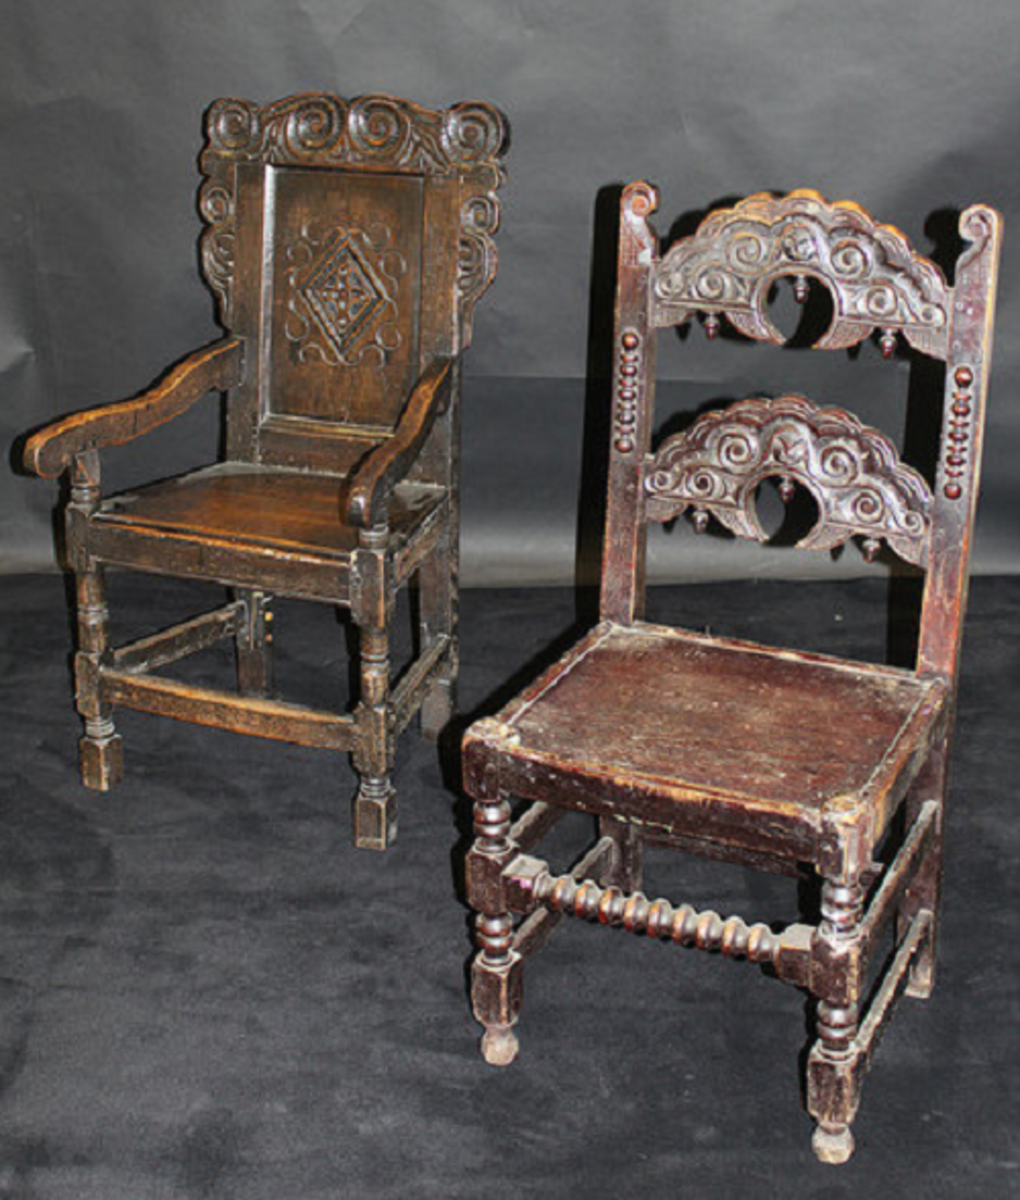 Early American Furniture (17th Century Colonial Era)